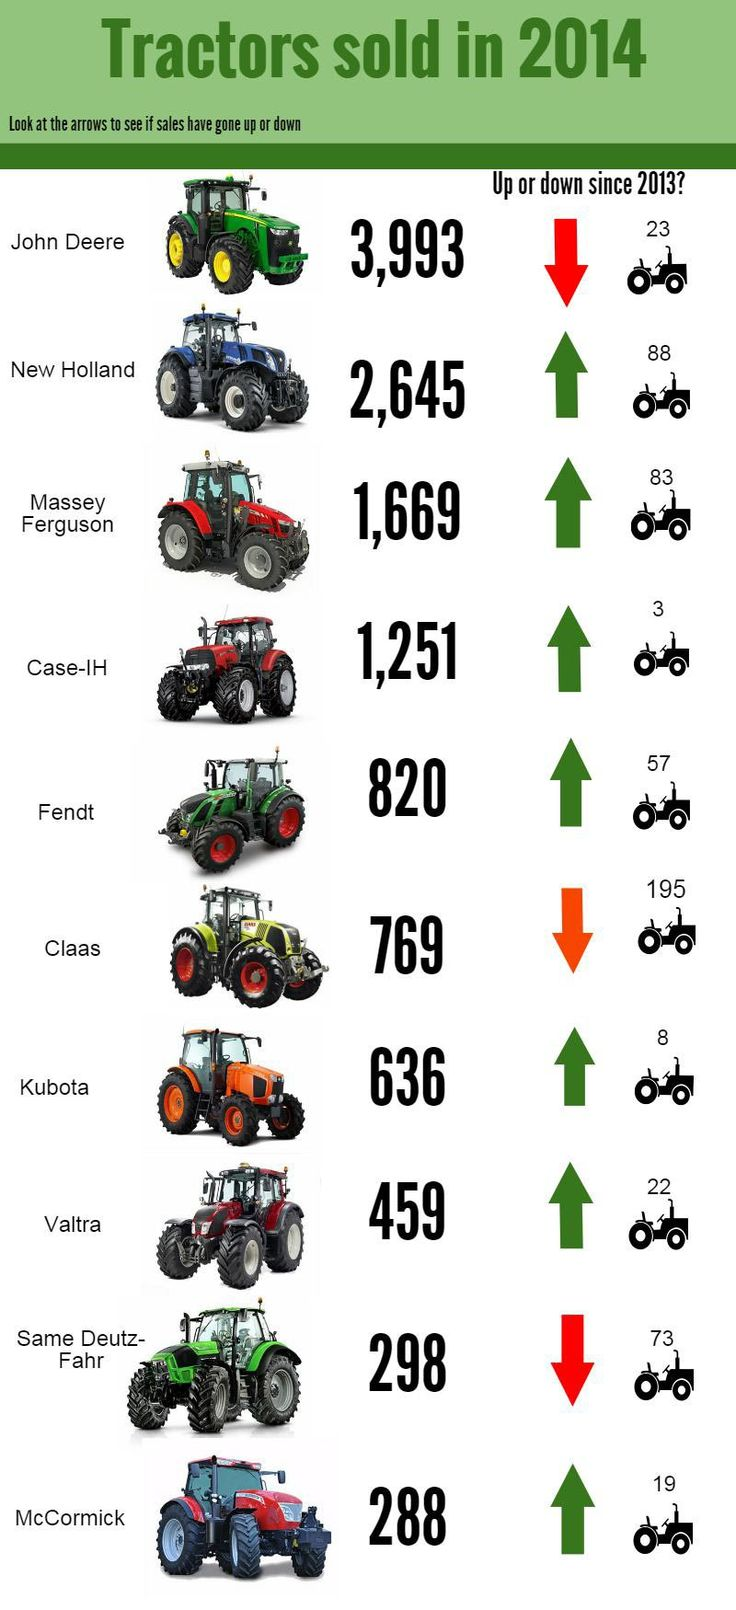 10 best selling tractor brands in the UK in 2014... As usual, the EU's competition rules mean the figures can only be made public 12 months after they are collated, so the ones we are able to publish refer to 2014's tractor sales.